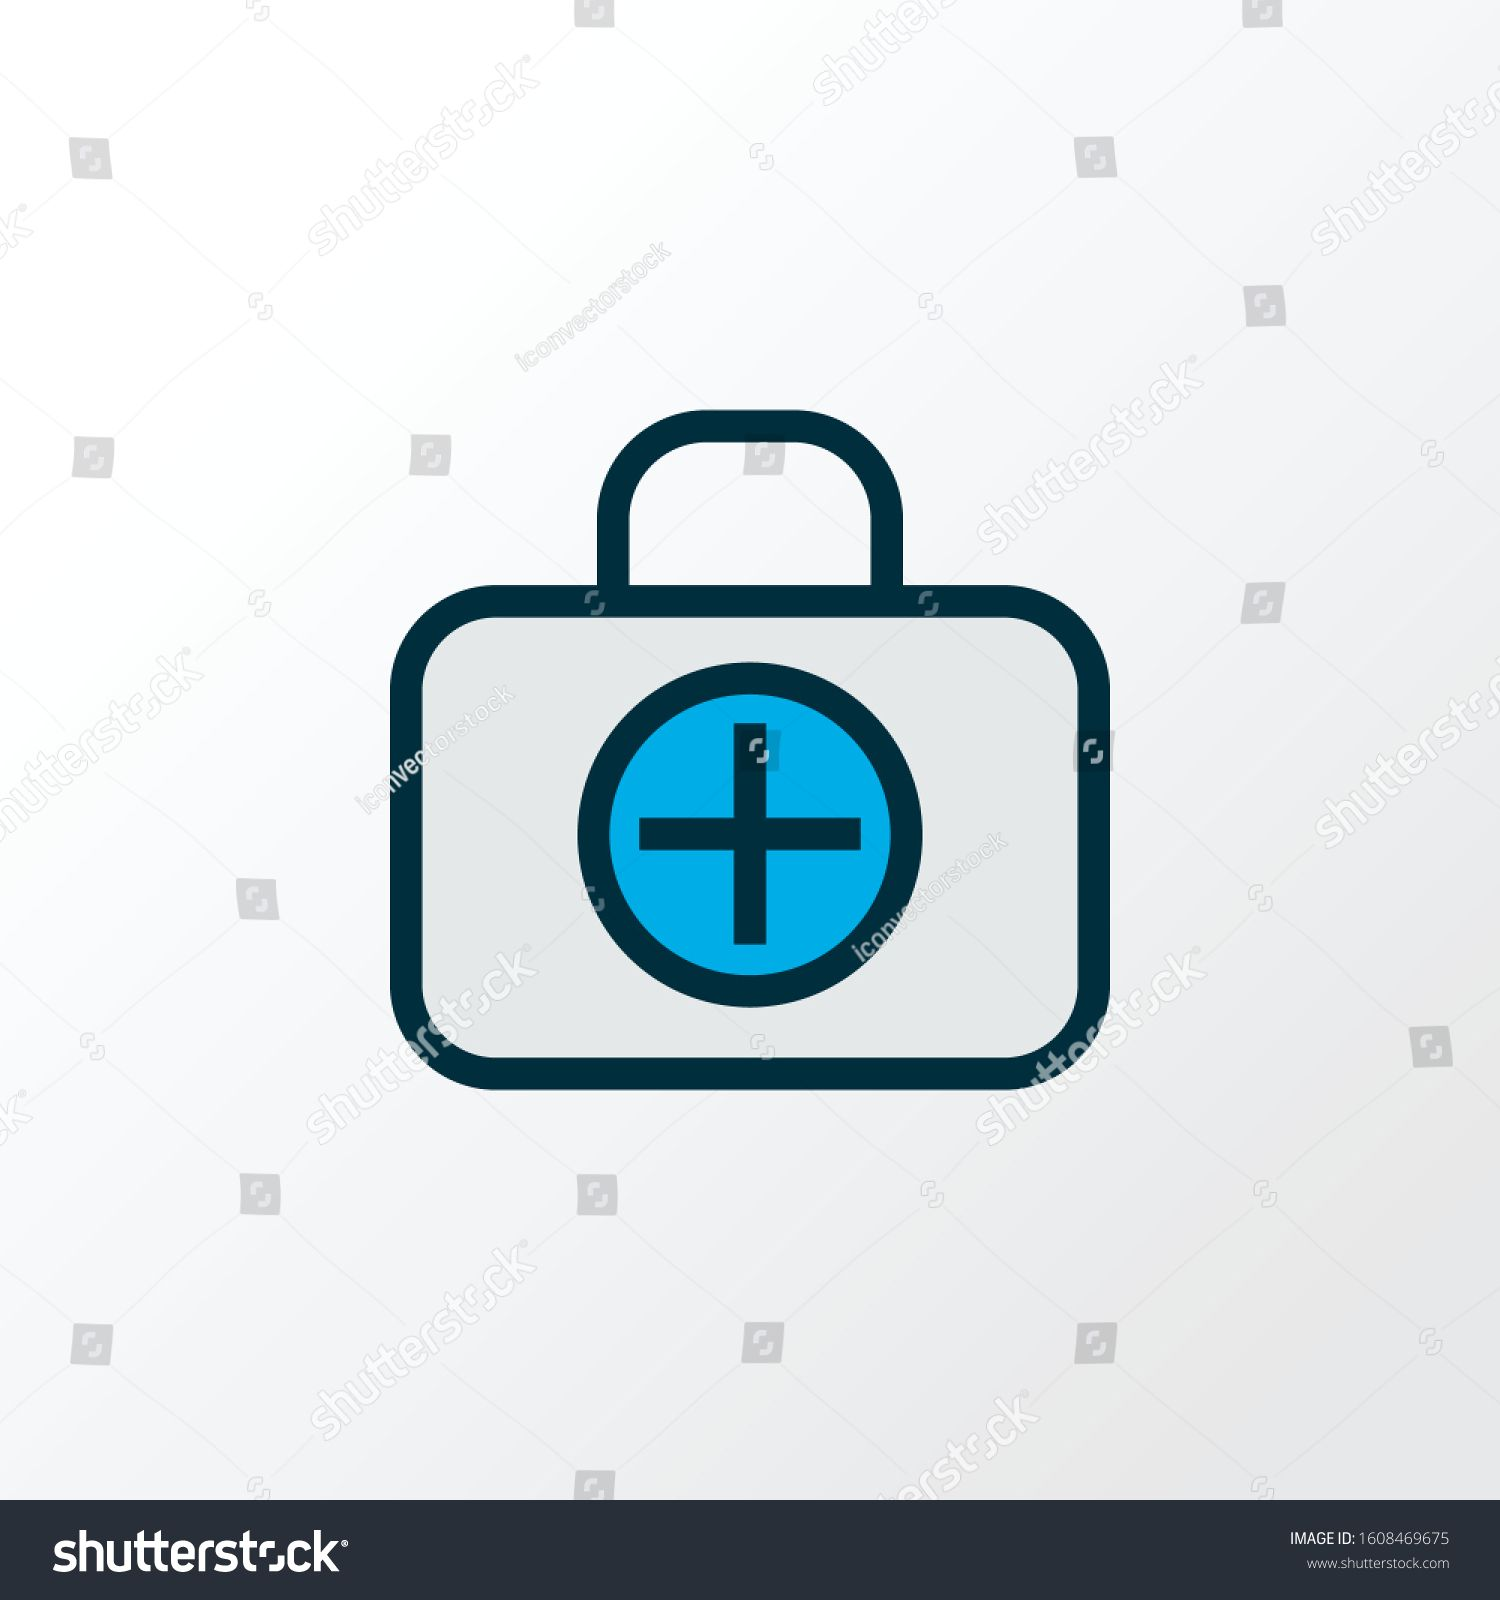 Medical Case Icon Colored Line Symbol Premium Quality Isolated First Aid Kit Element In Trendy Style Ad Ad Color Lines Infographic Design Process Symbols